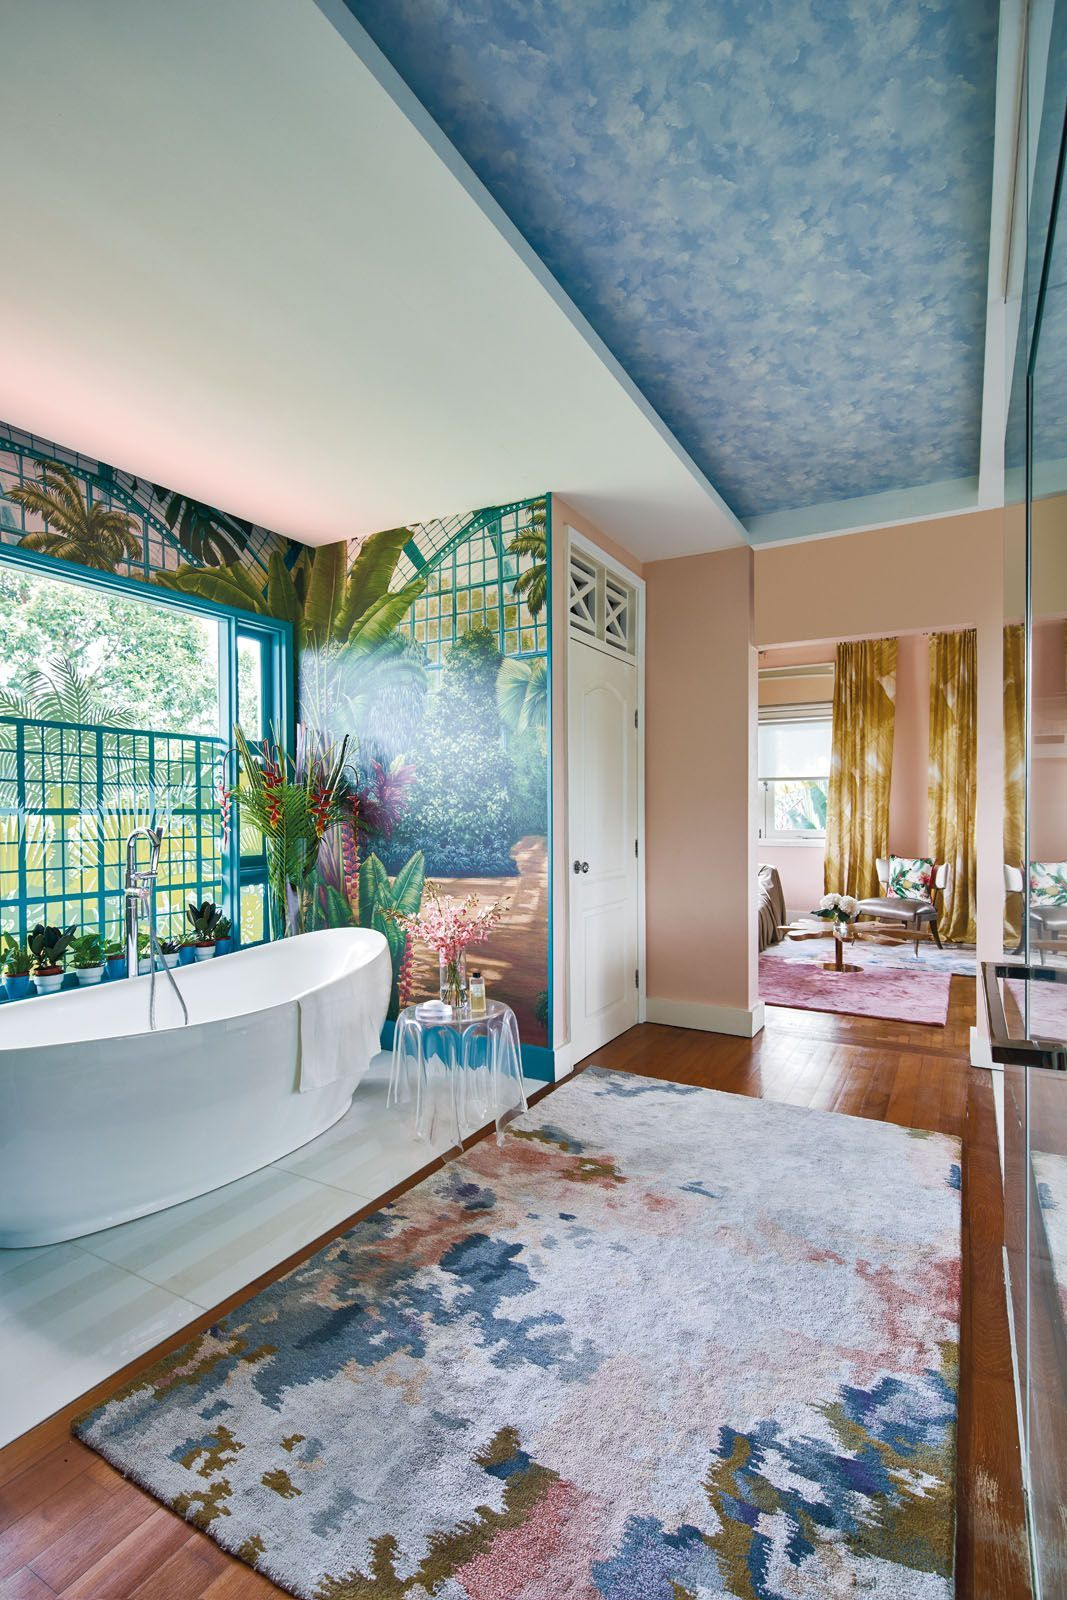 A bathroom crafted by Design Intervention